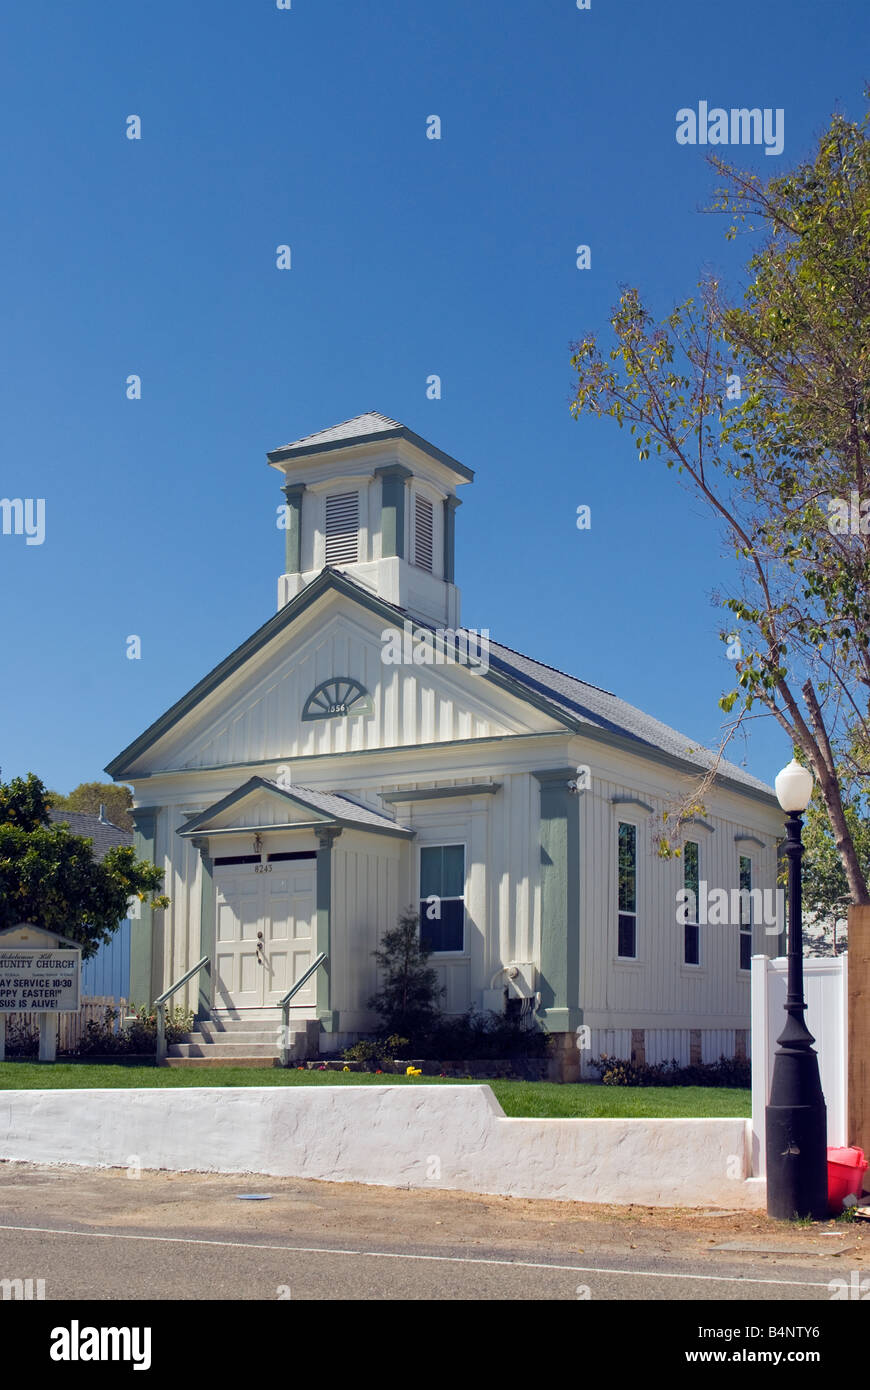 Historic Community Church in Mokelumne Hill Gold Country California USA - Stock Image